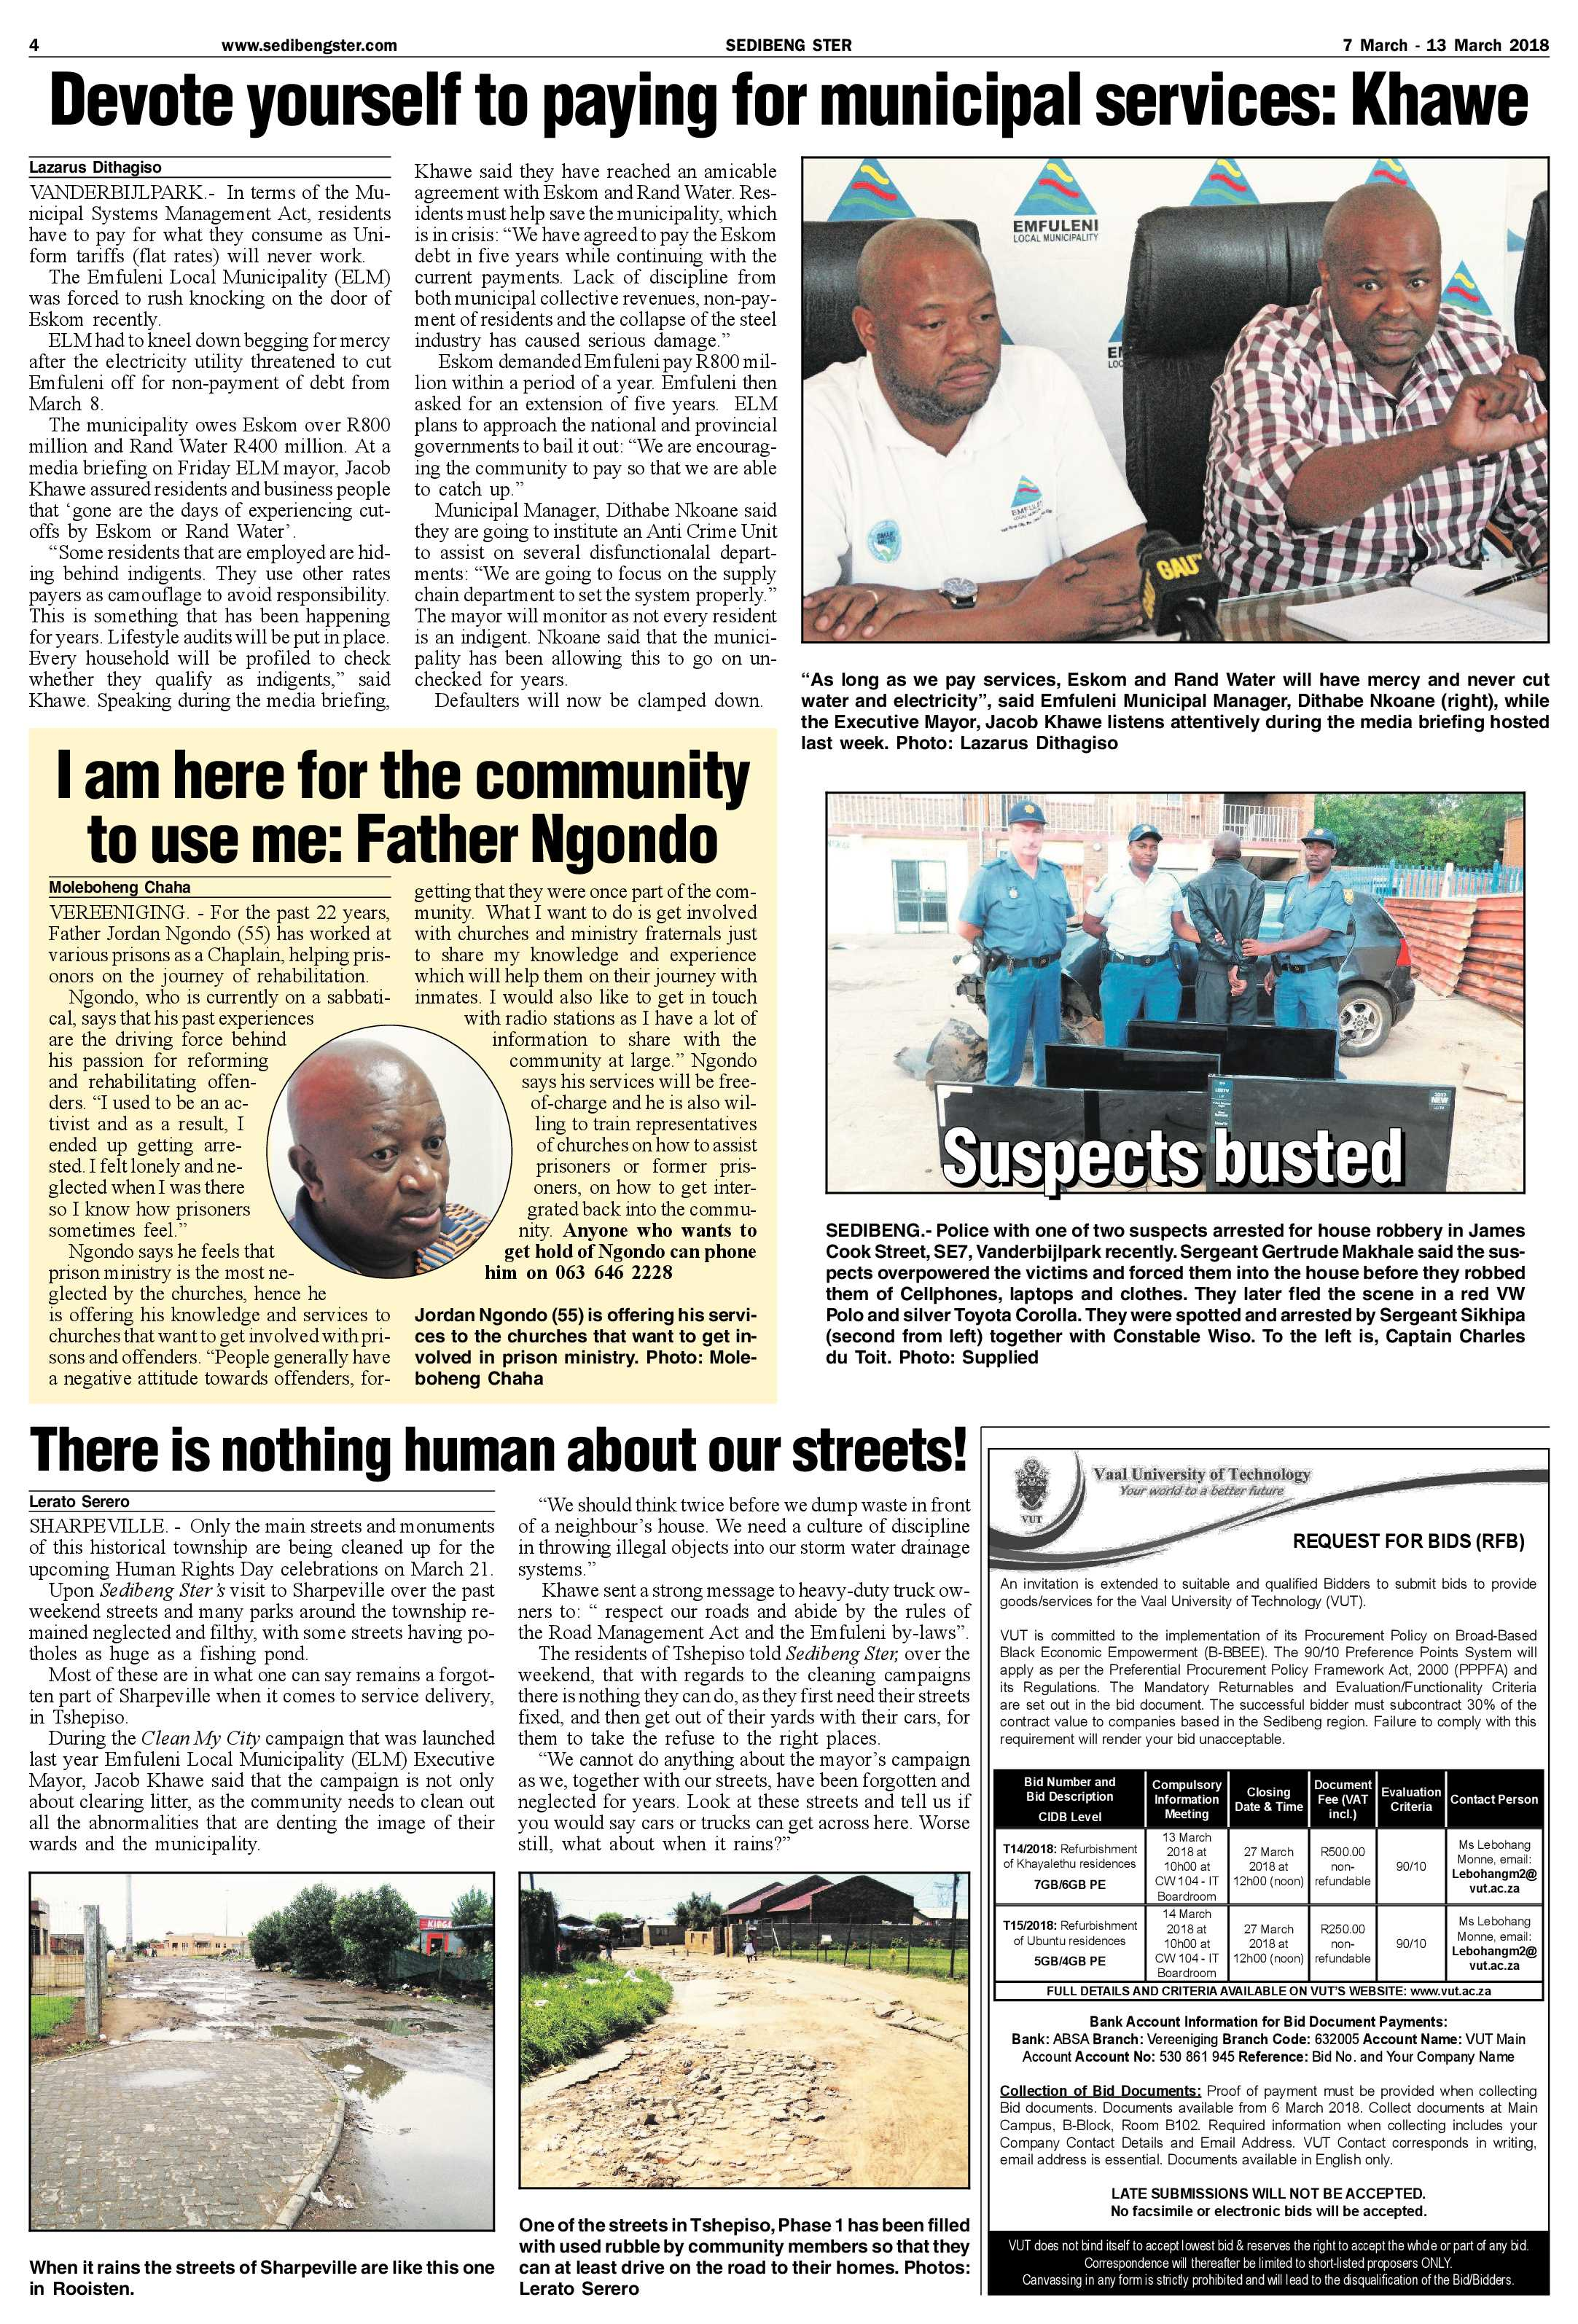 sedibeng-ster-7-13-march-2018-epapers-page-4